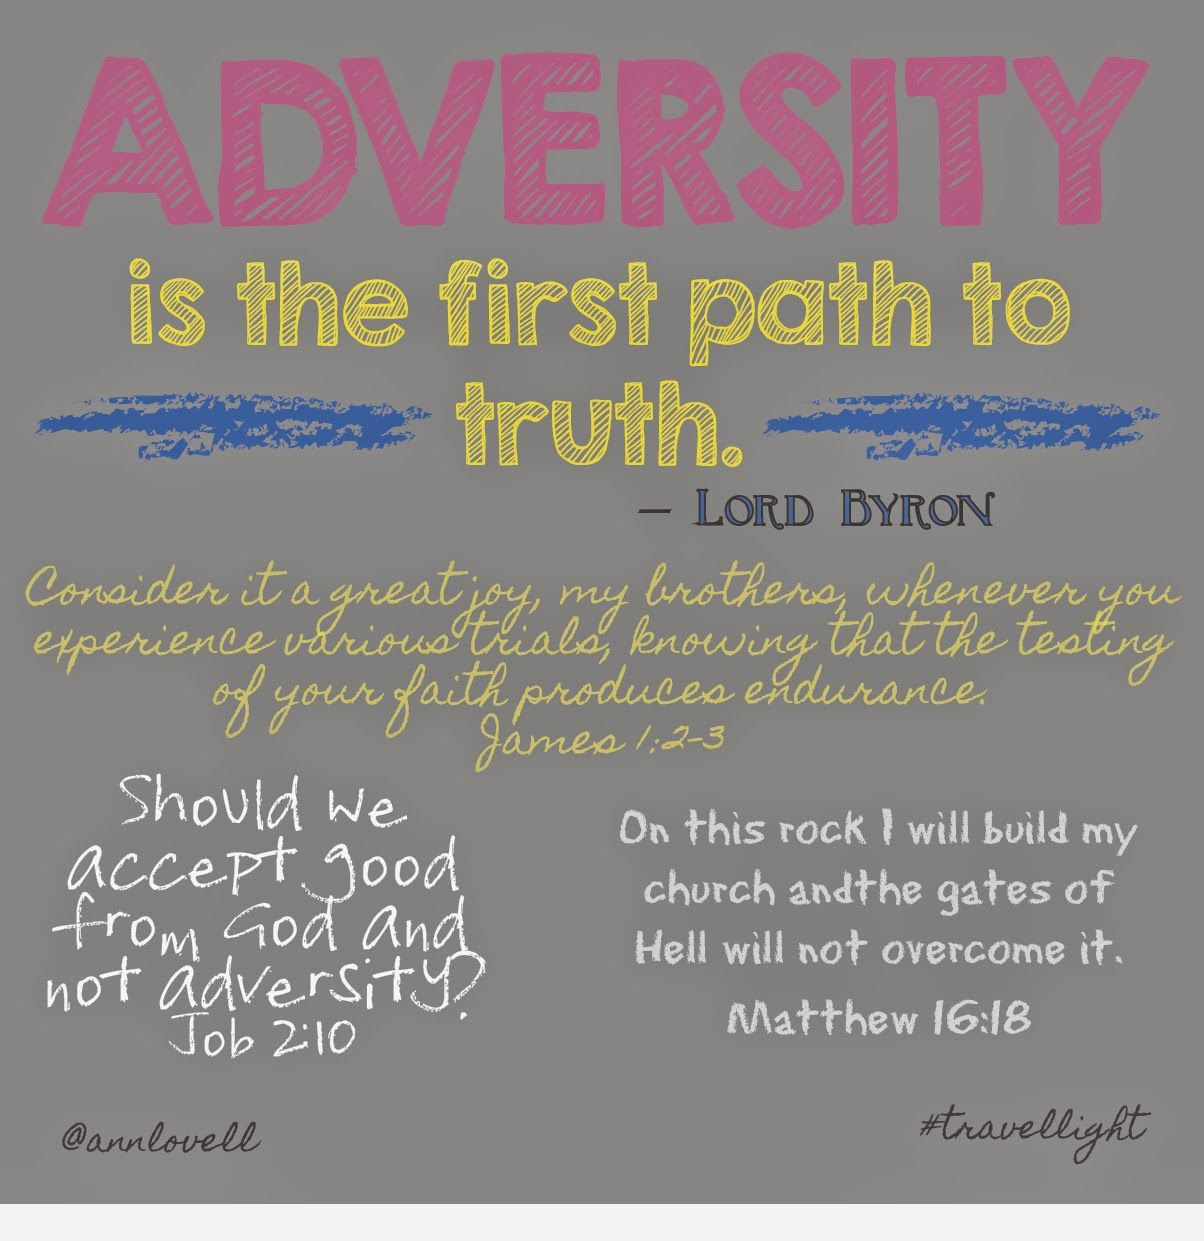 Two things to remember when adversity comes.